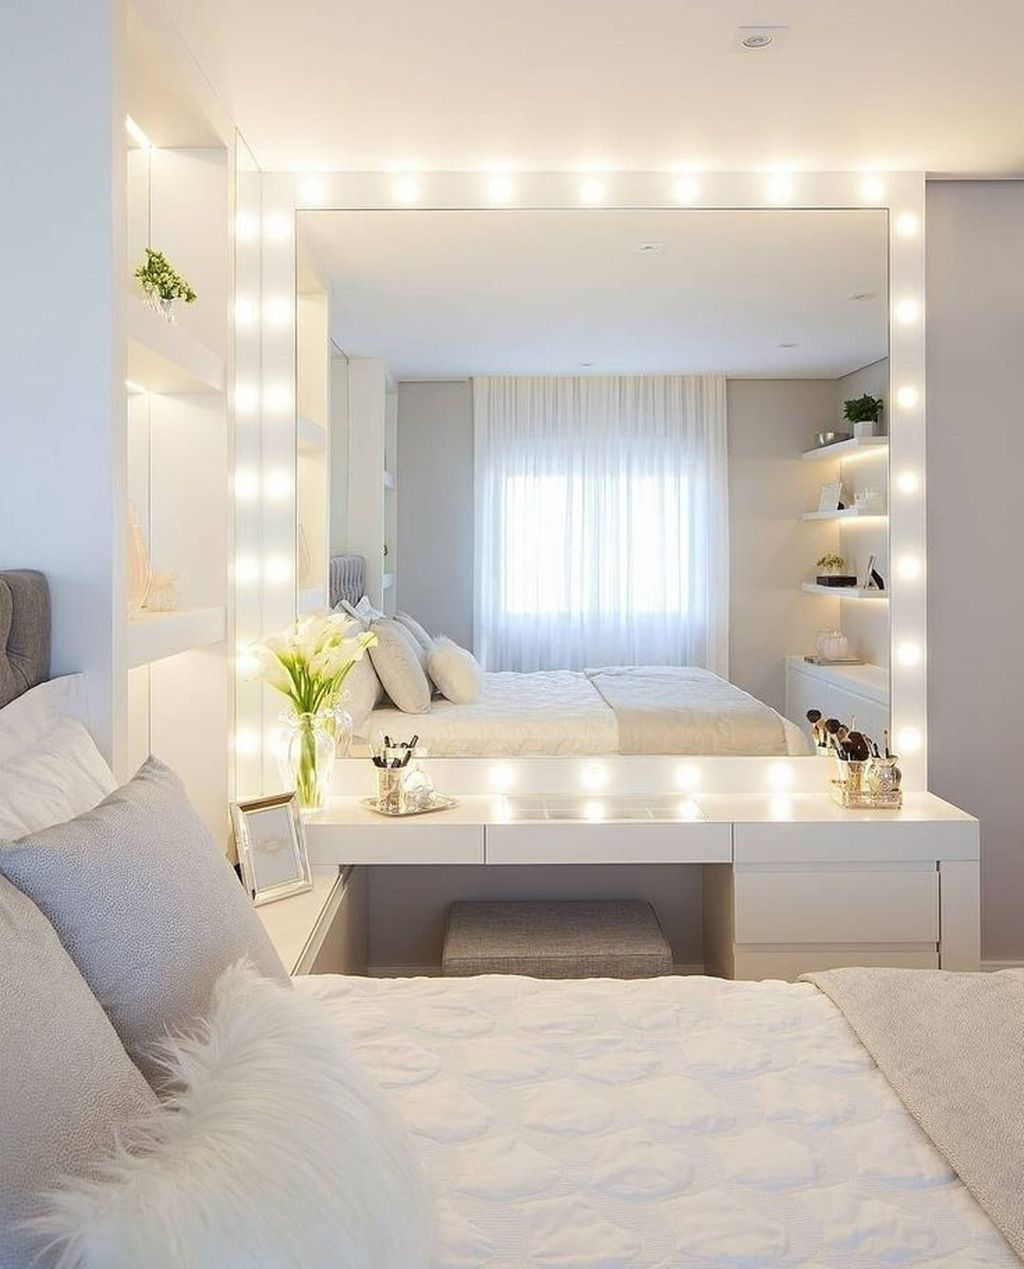 40 Amazing Bedroom Decor Ideas For Teens Girls #girlsbedroom